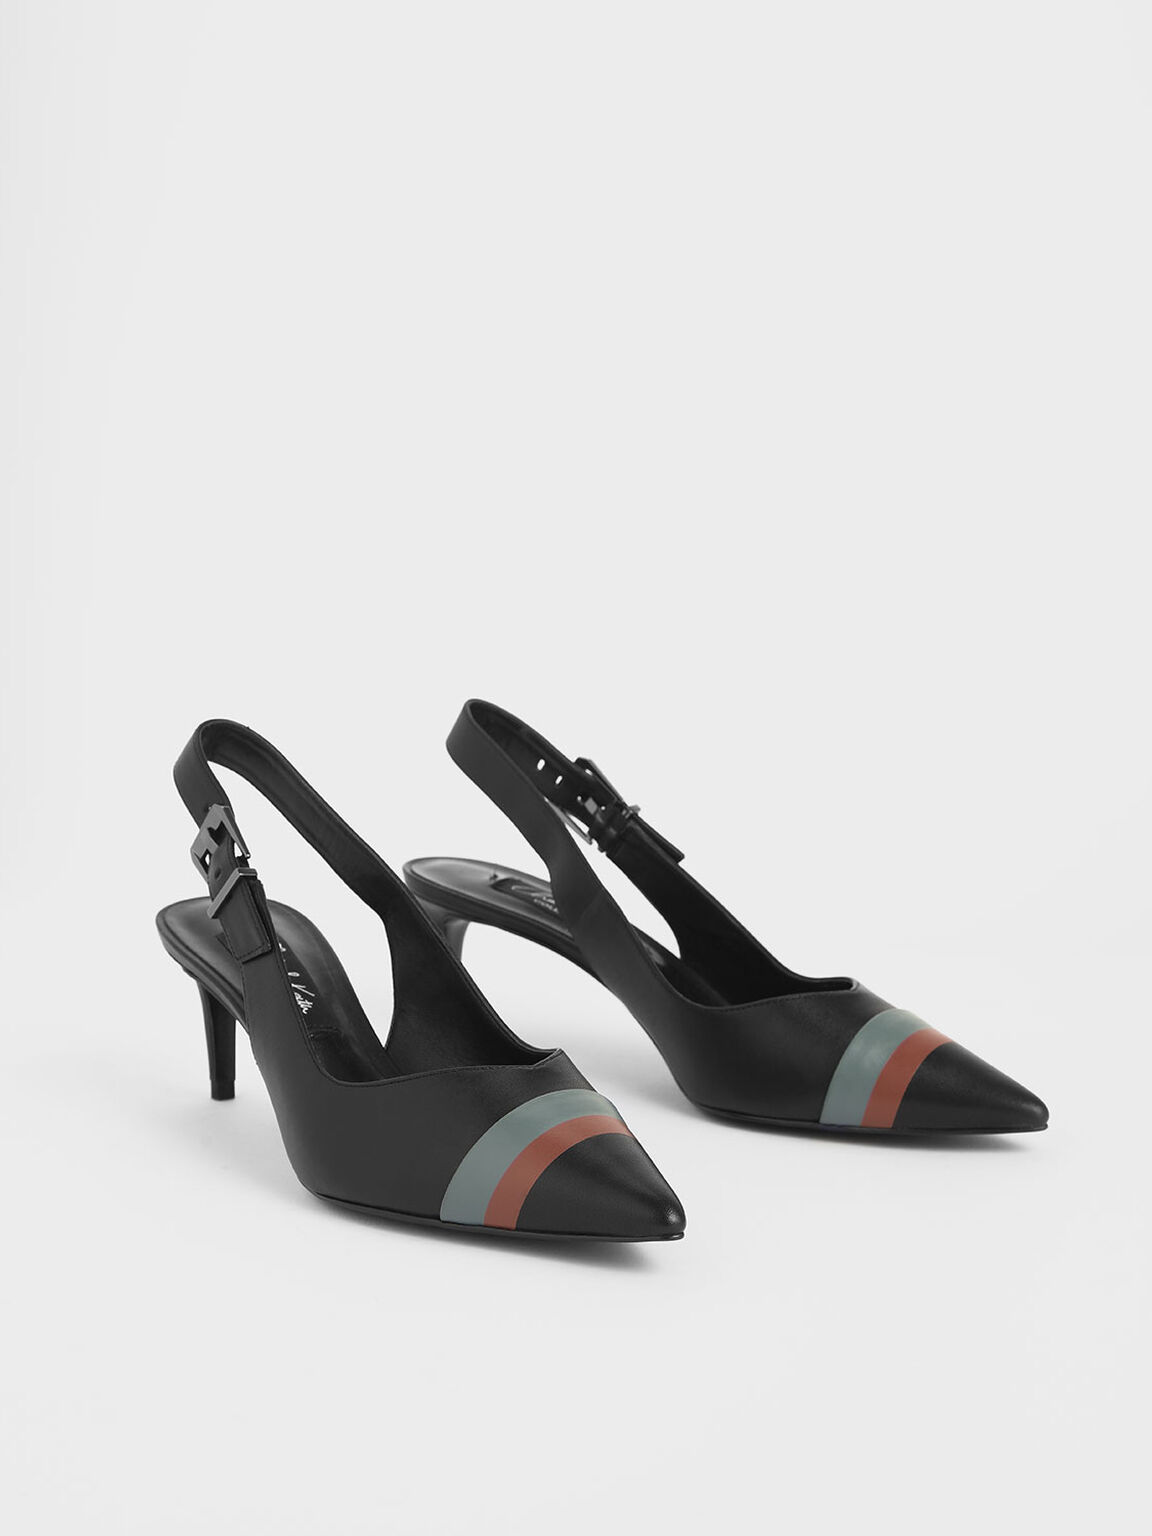 Striped Leather Slingback Heels, Black, hi-res